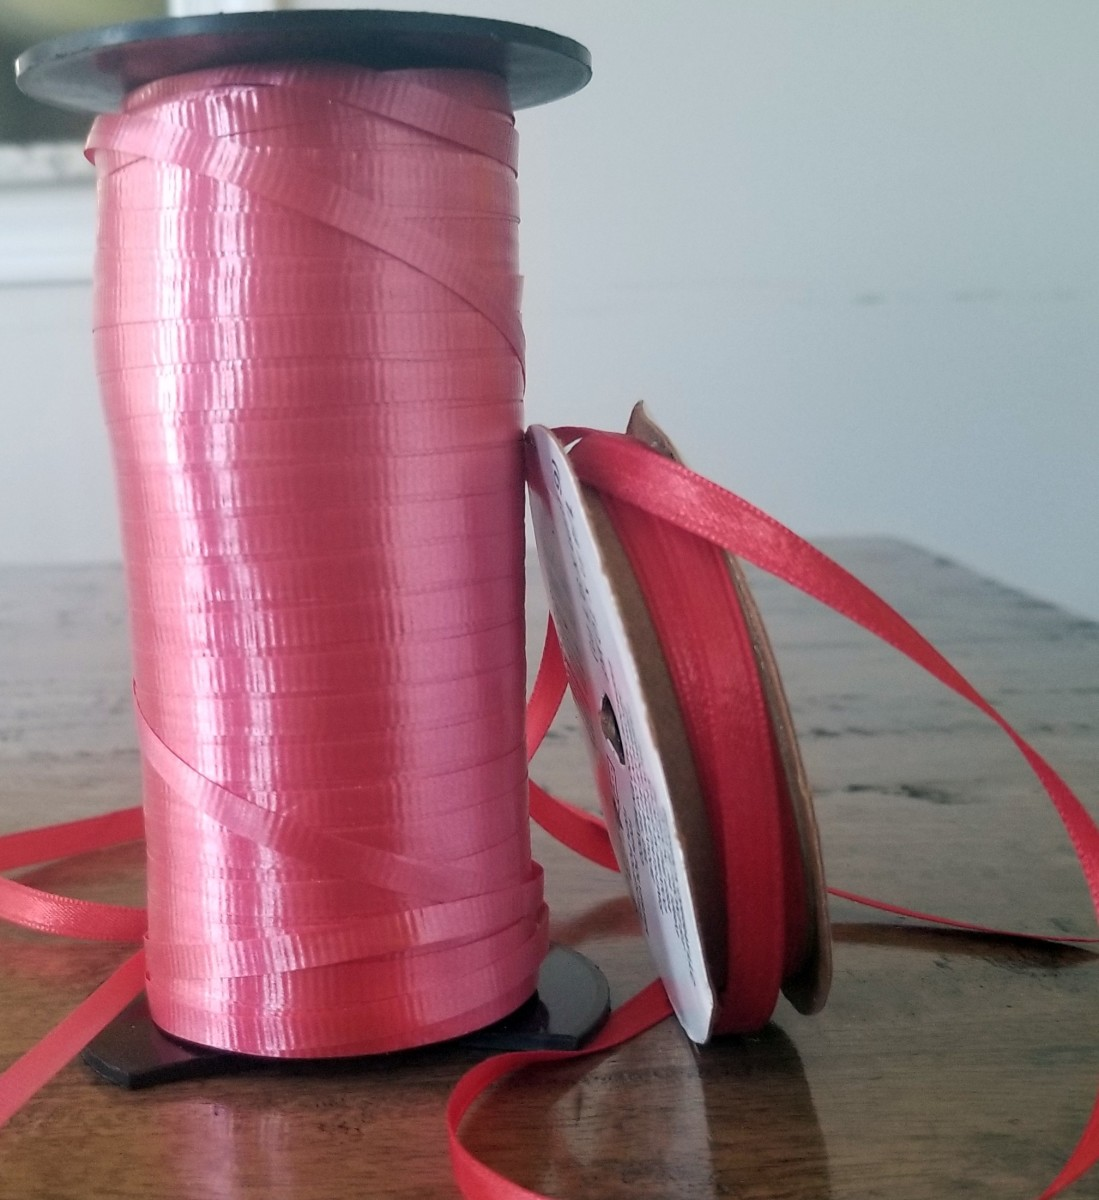 Red ribbon is attractive for commercial packages or personal gifts.